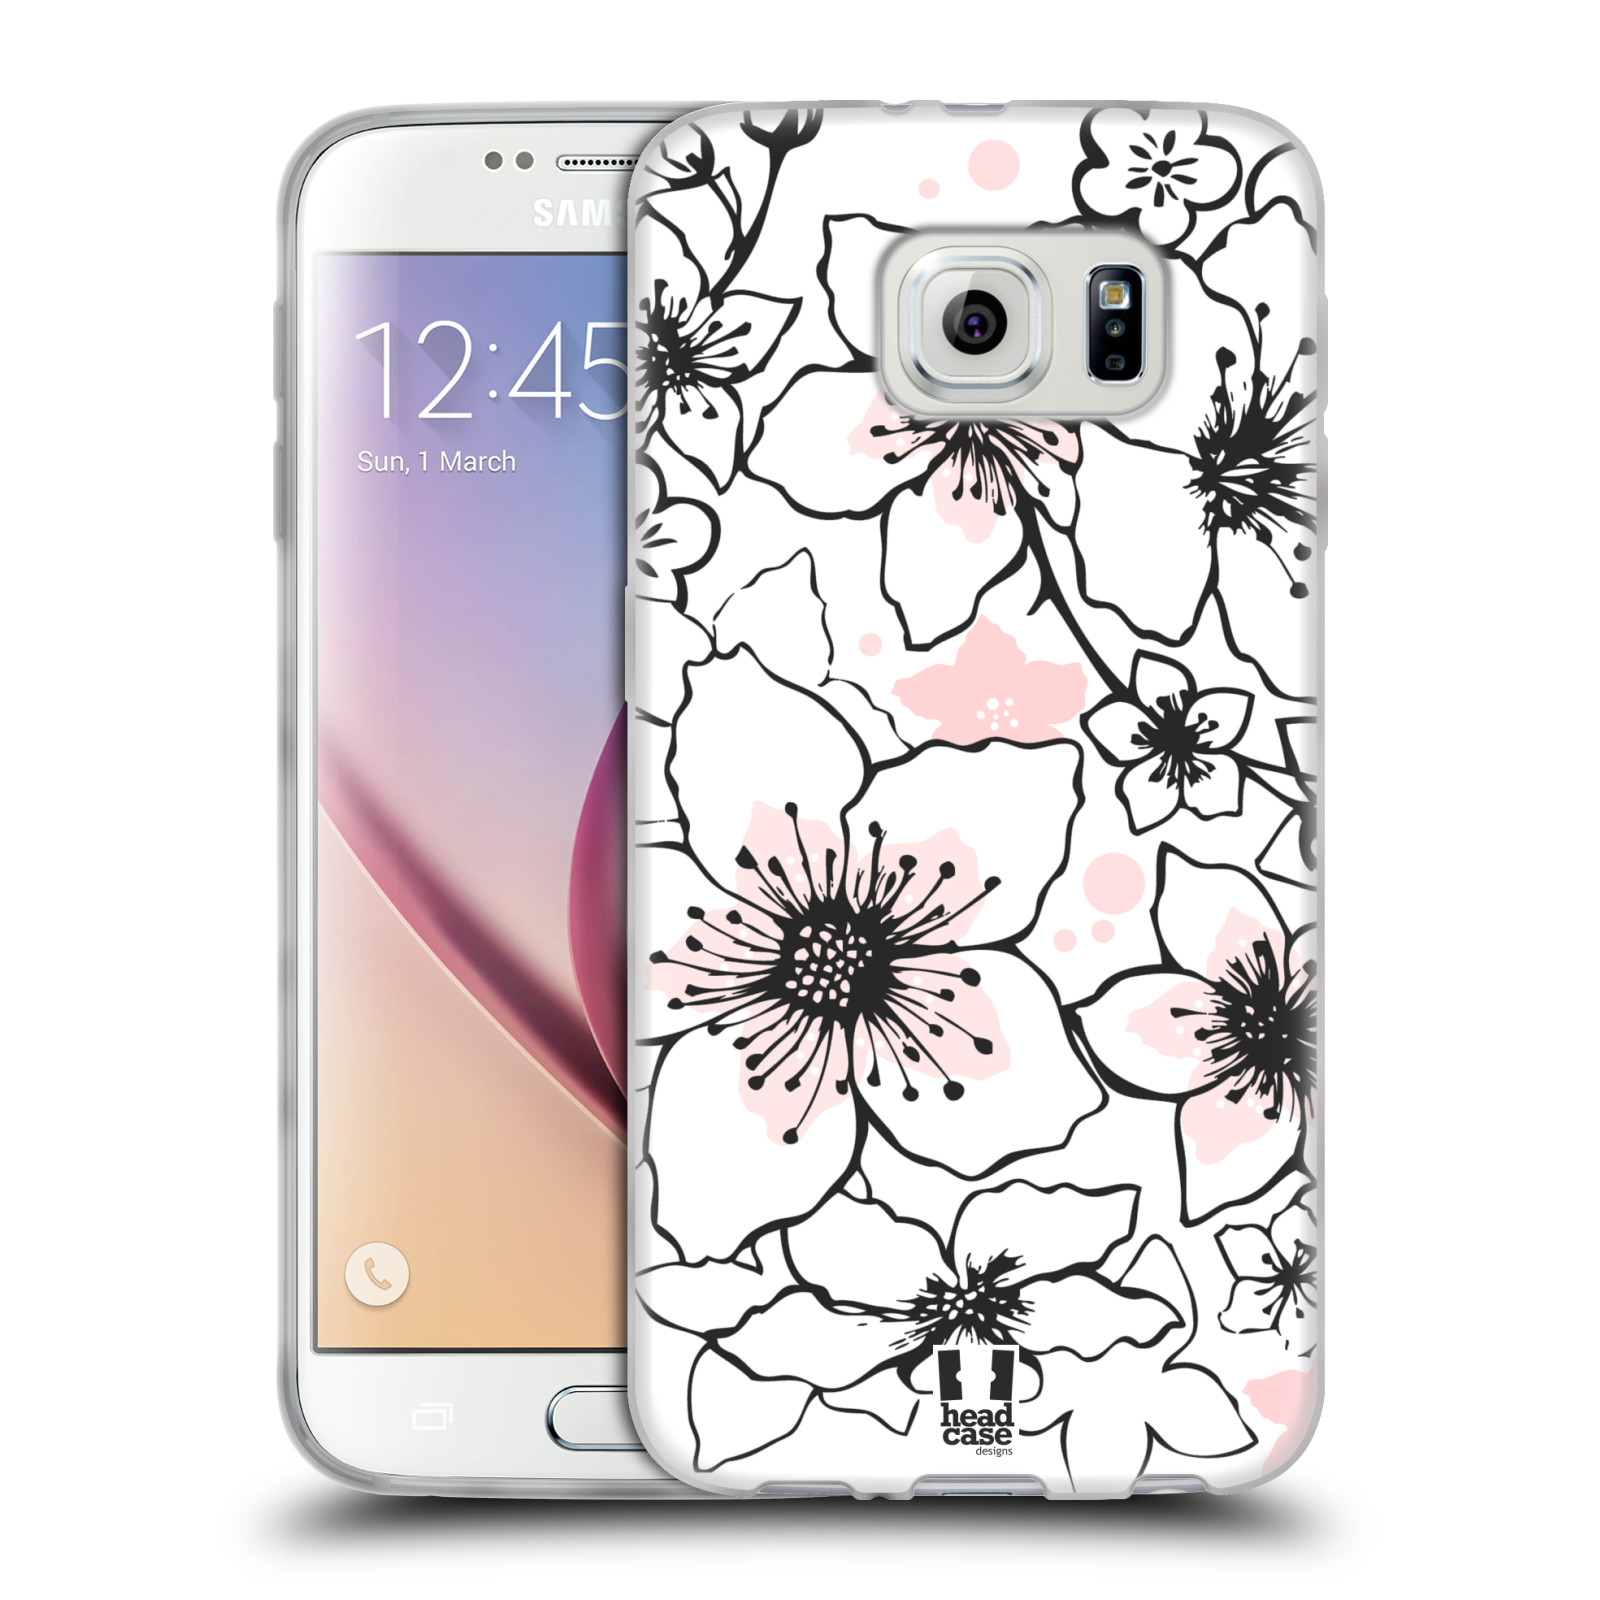 HEAD CASE DESIGNS CHERRY BLOSSOMS SOFT GEL CASE FOR SAMSUNG PHONES 1